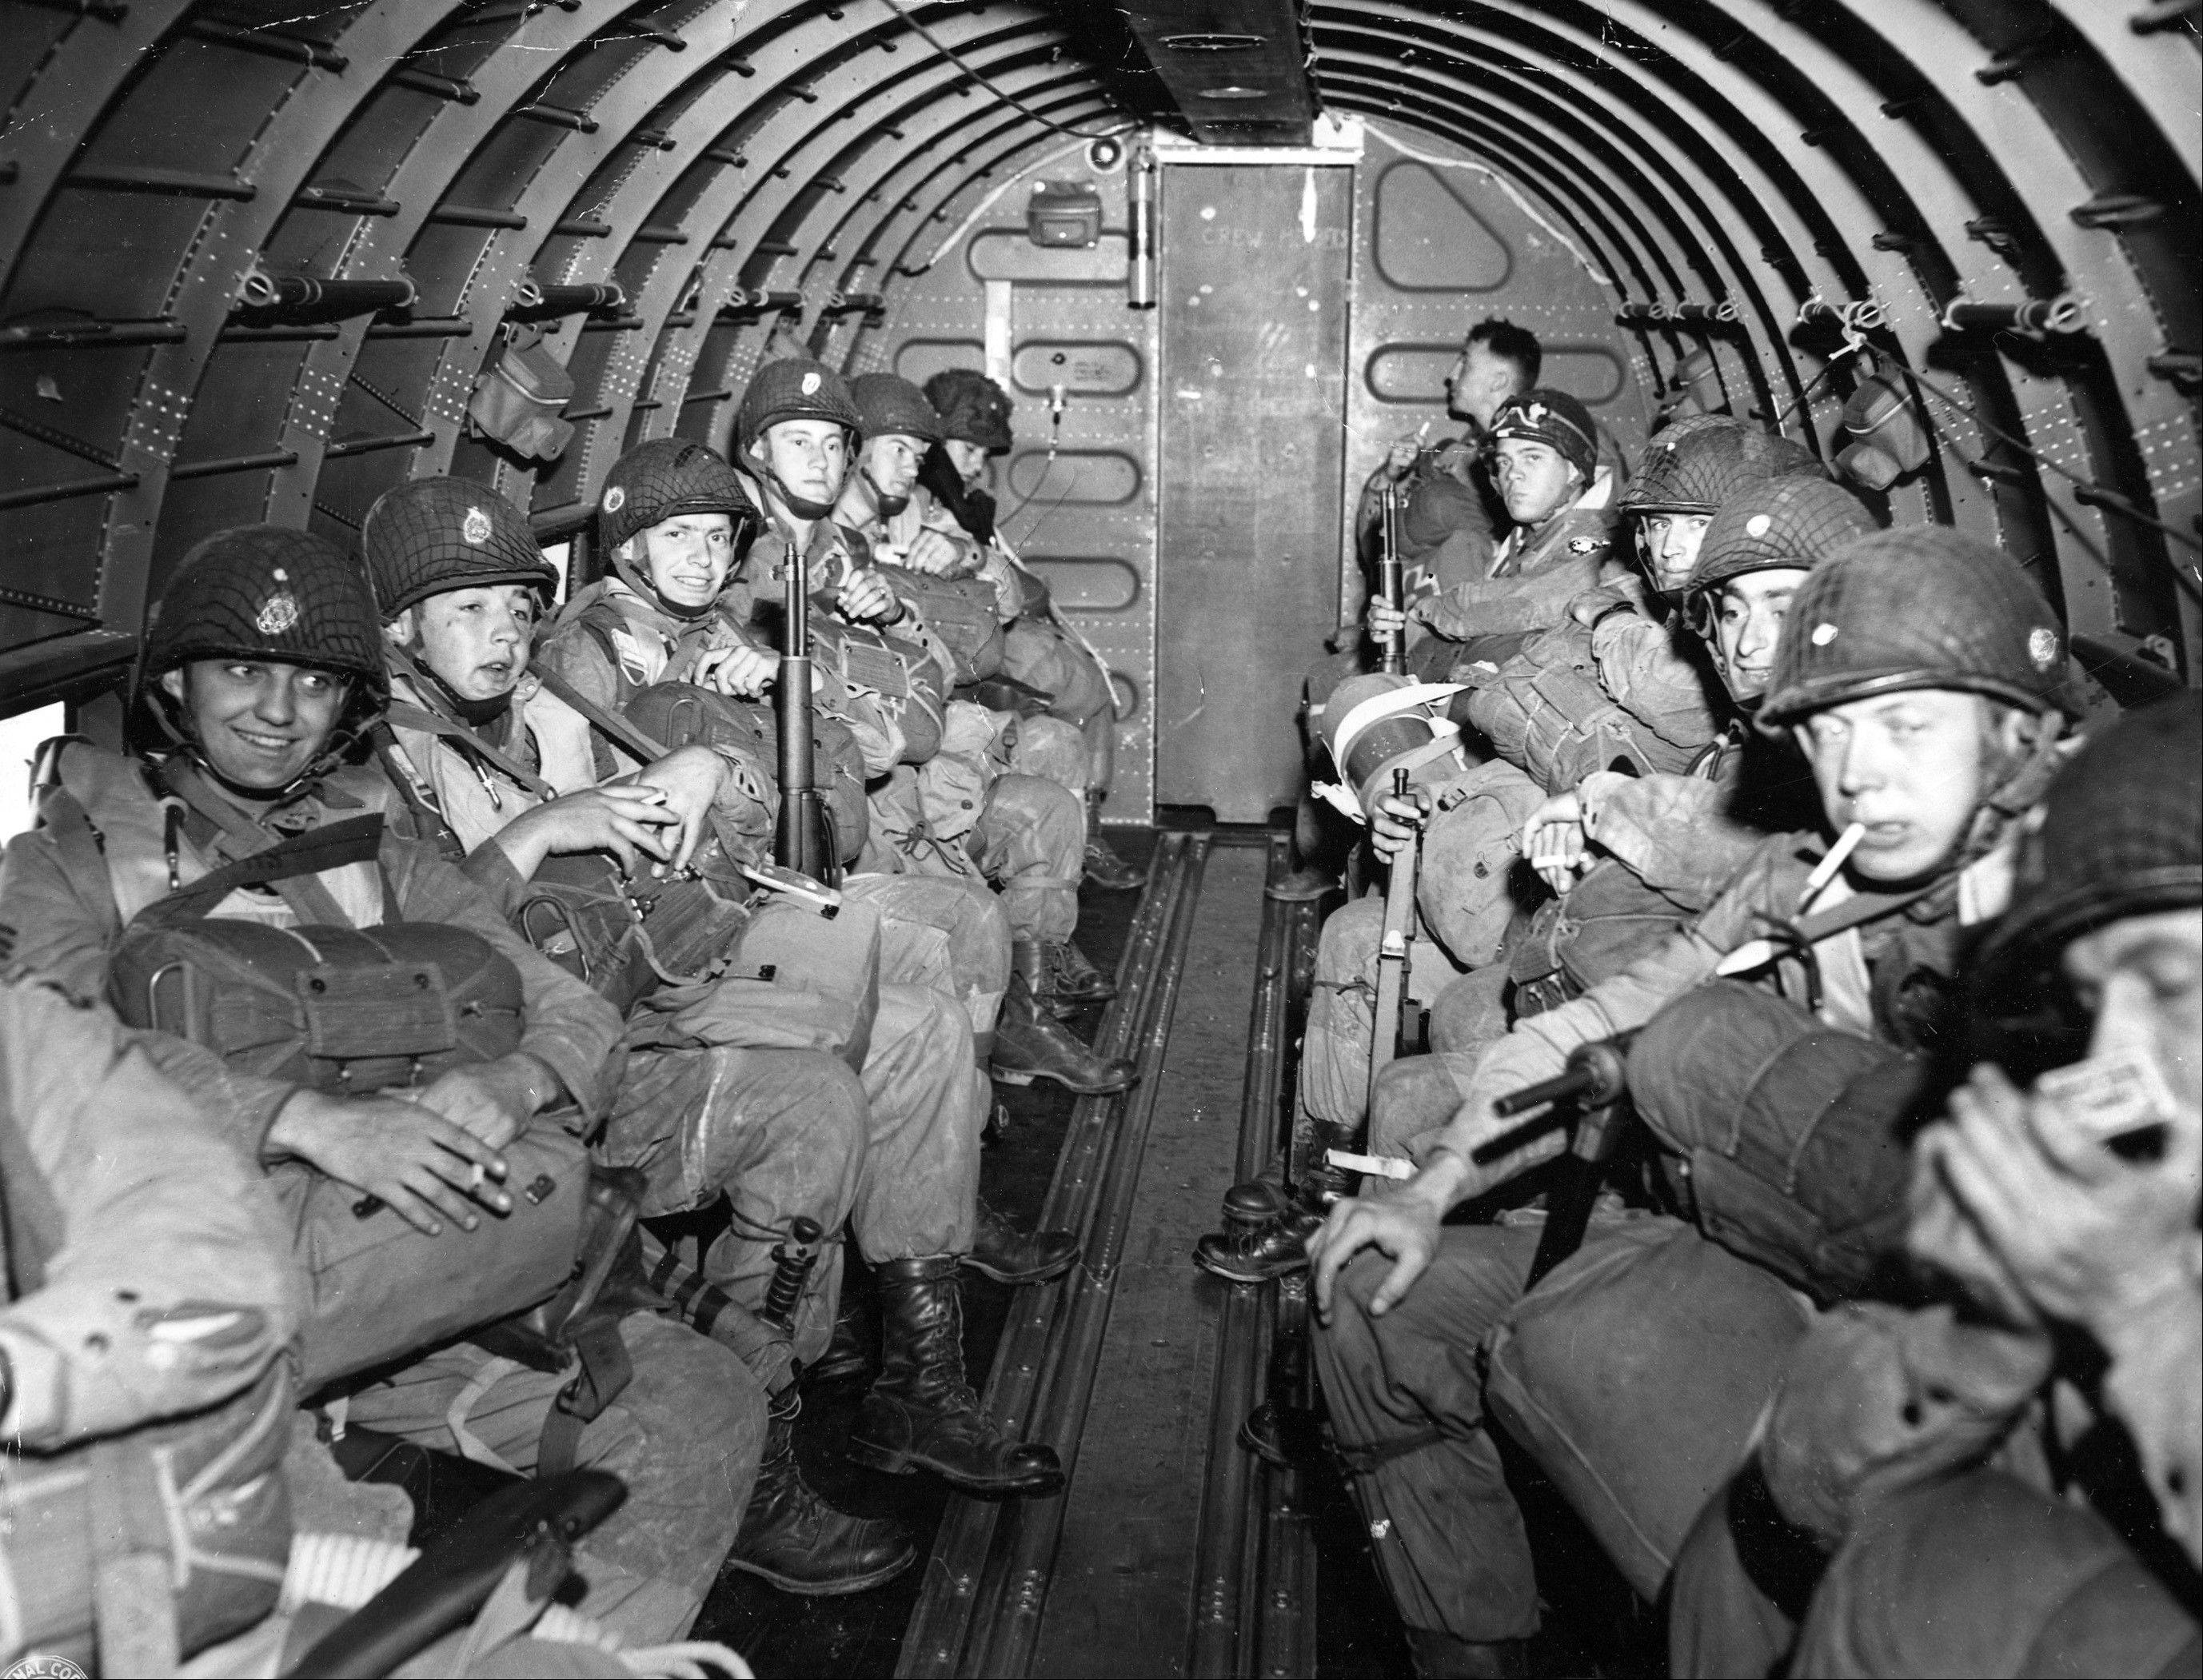 American Paratroopers fly over the English Channel enroute to play a key role in the invasion of France by landing along a 100 mile front of the Normandy coast on June 6, 1944.